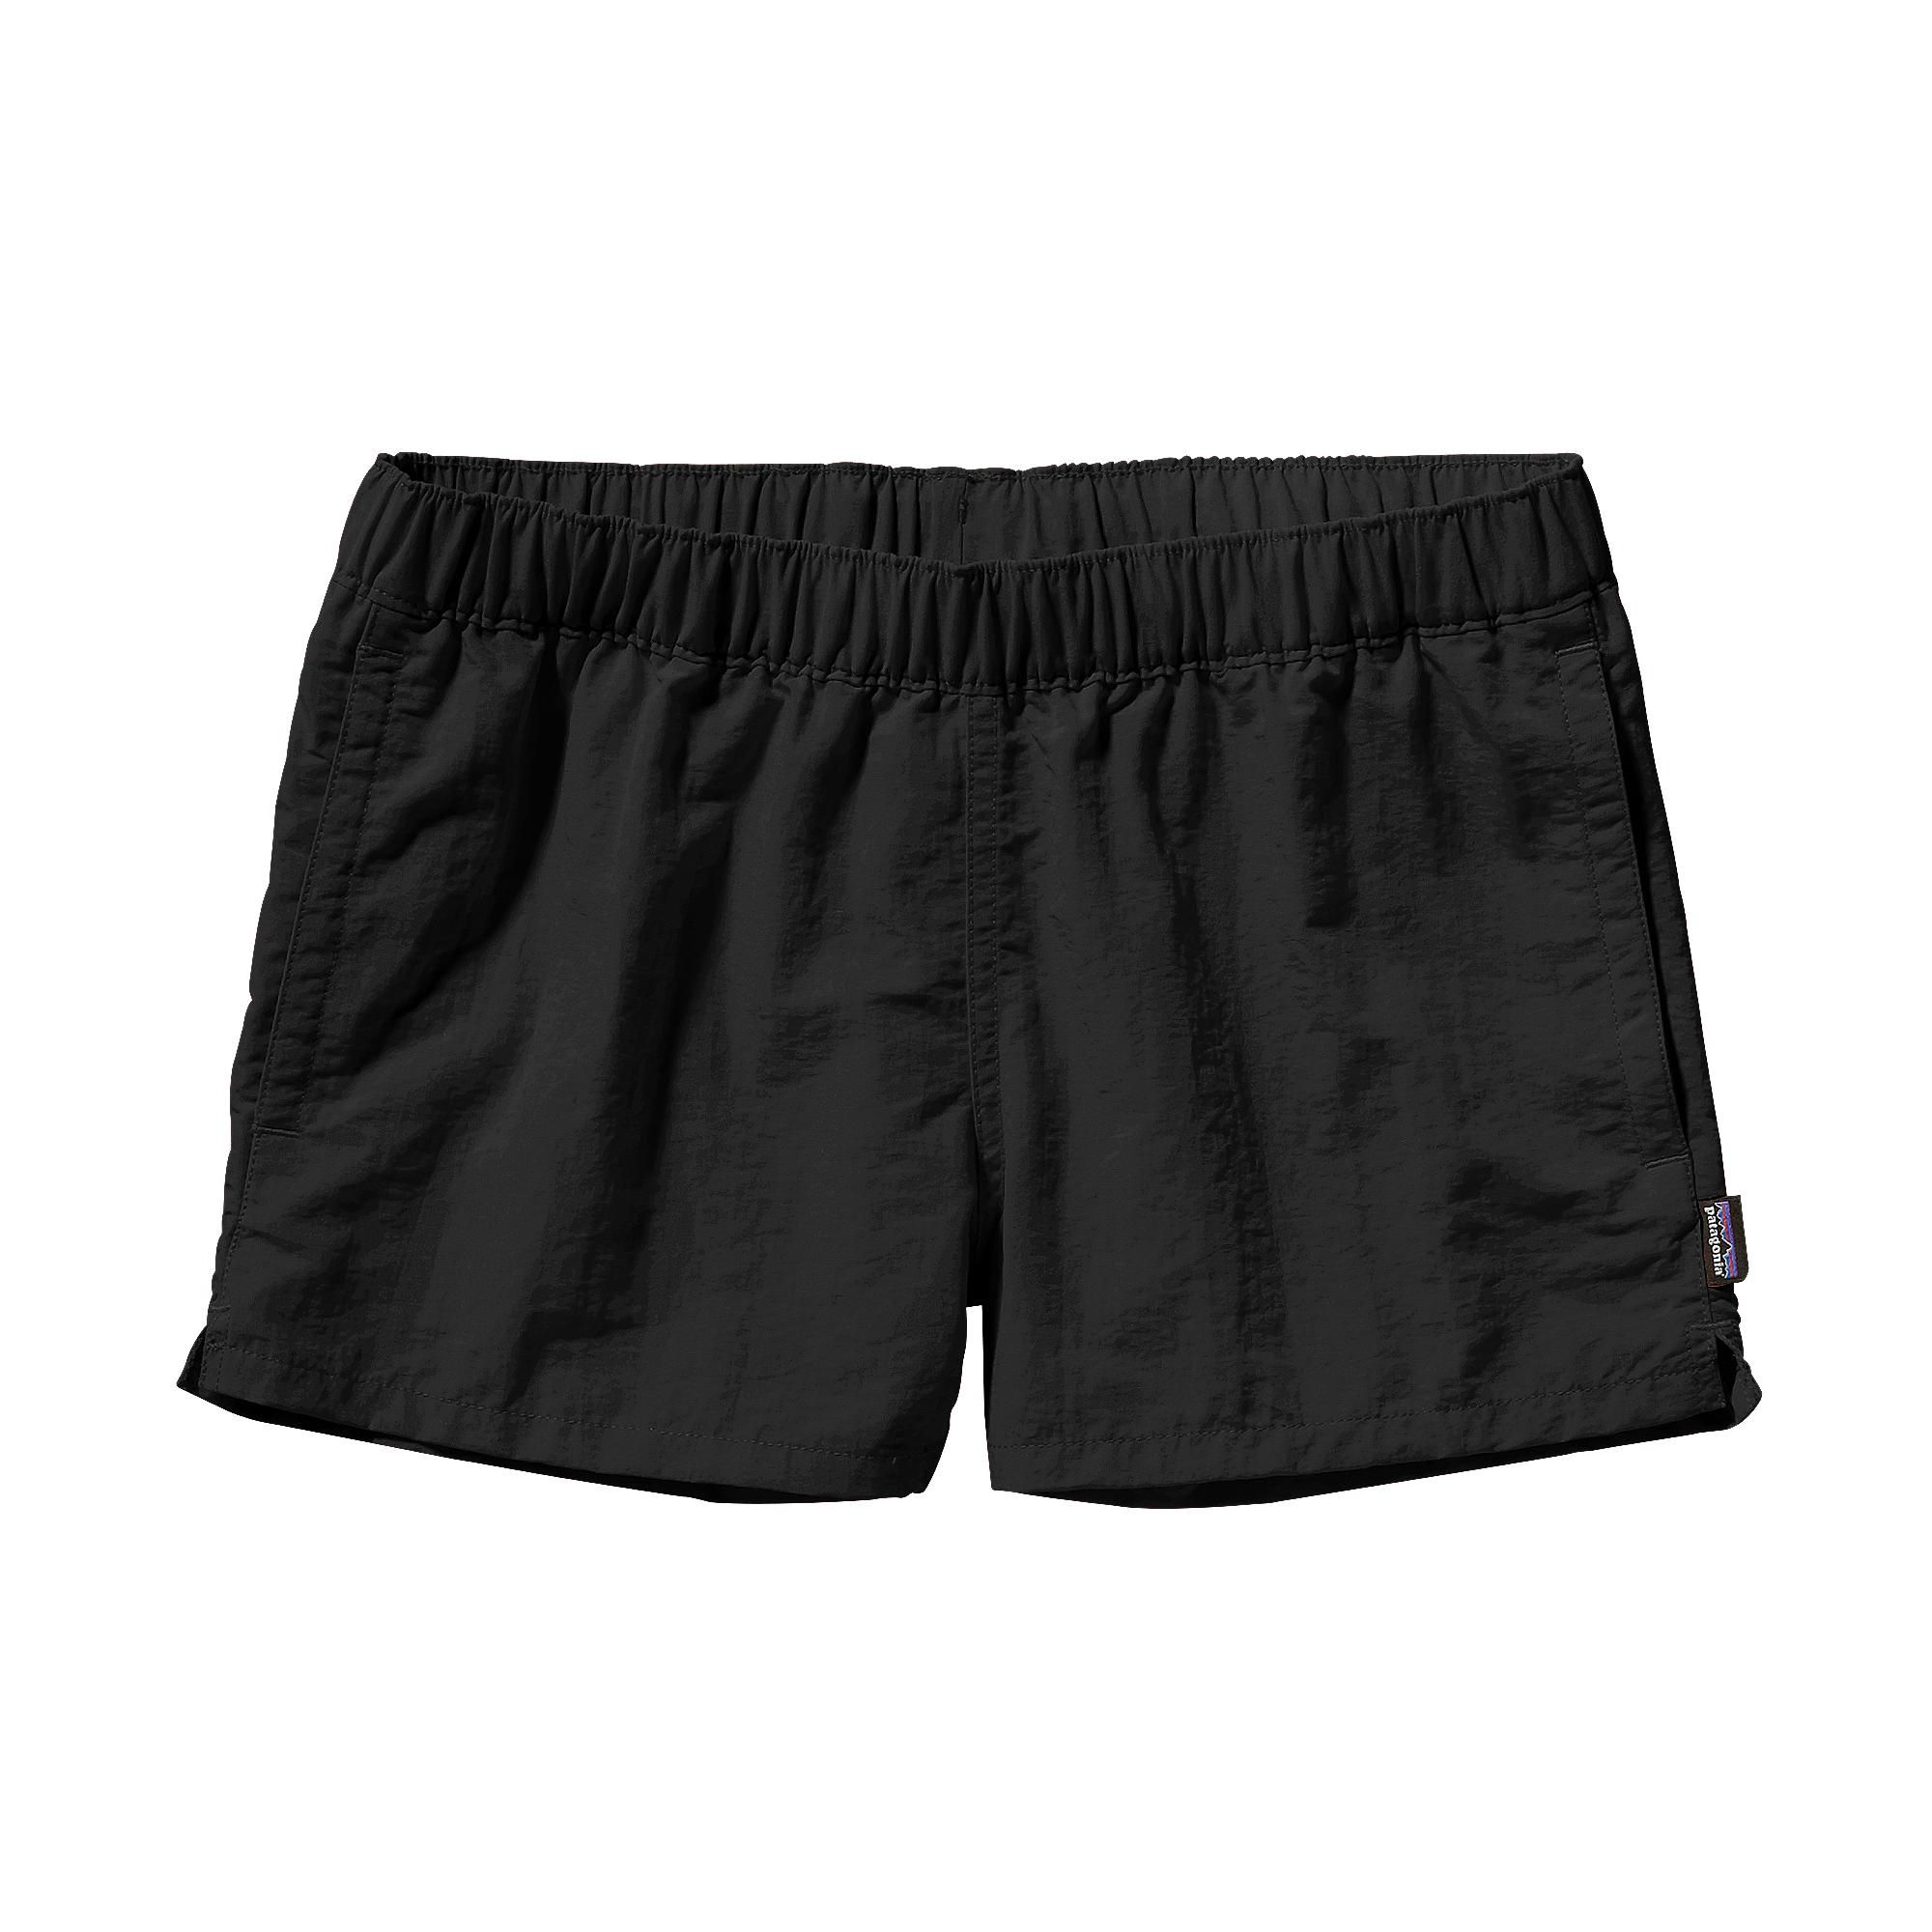 Patagonia Women S Barely Baggies Shorts 2 1 2 With Images Patagonia Shorts Women Board Shorts Women Patagonia Womens